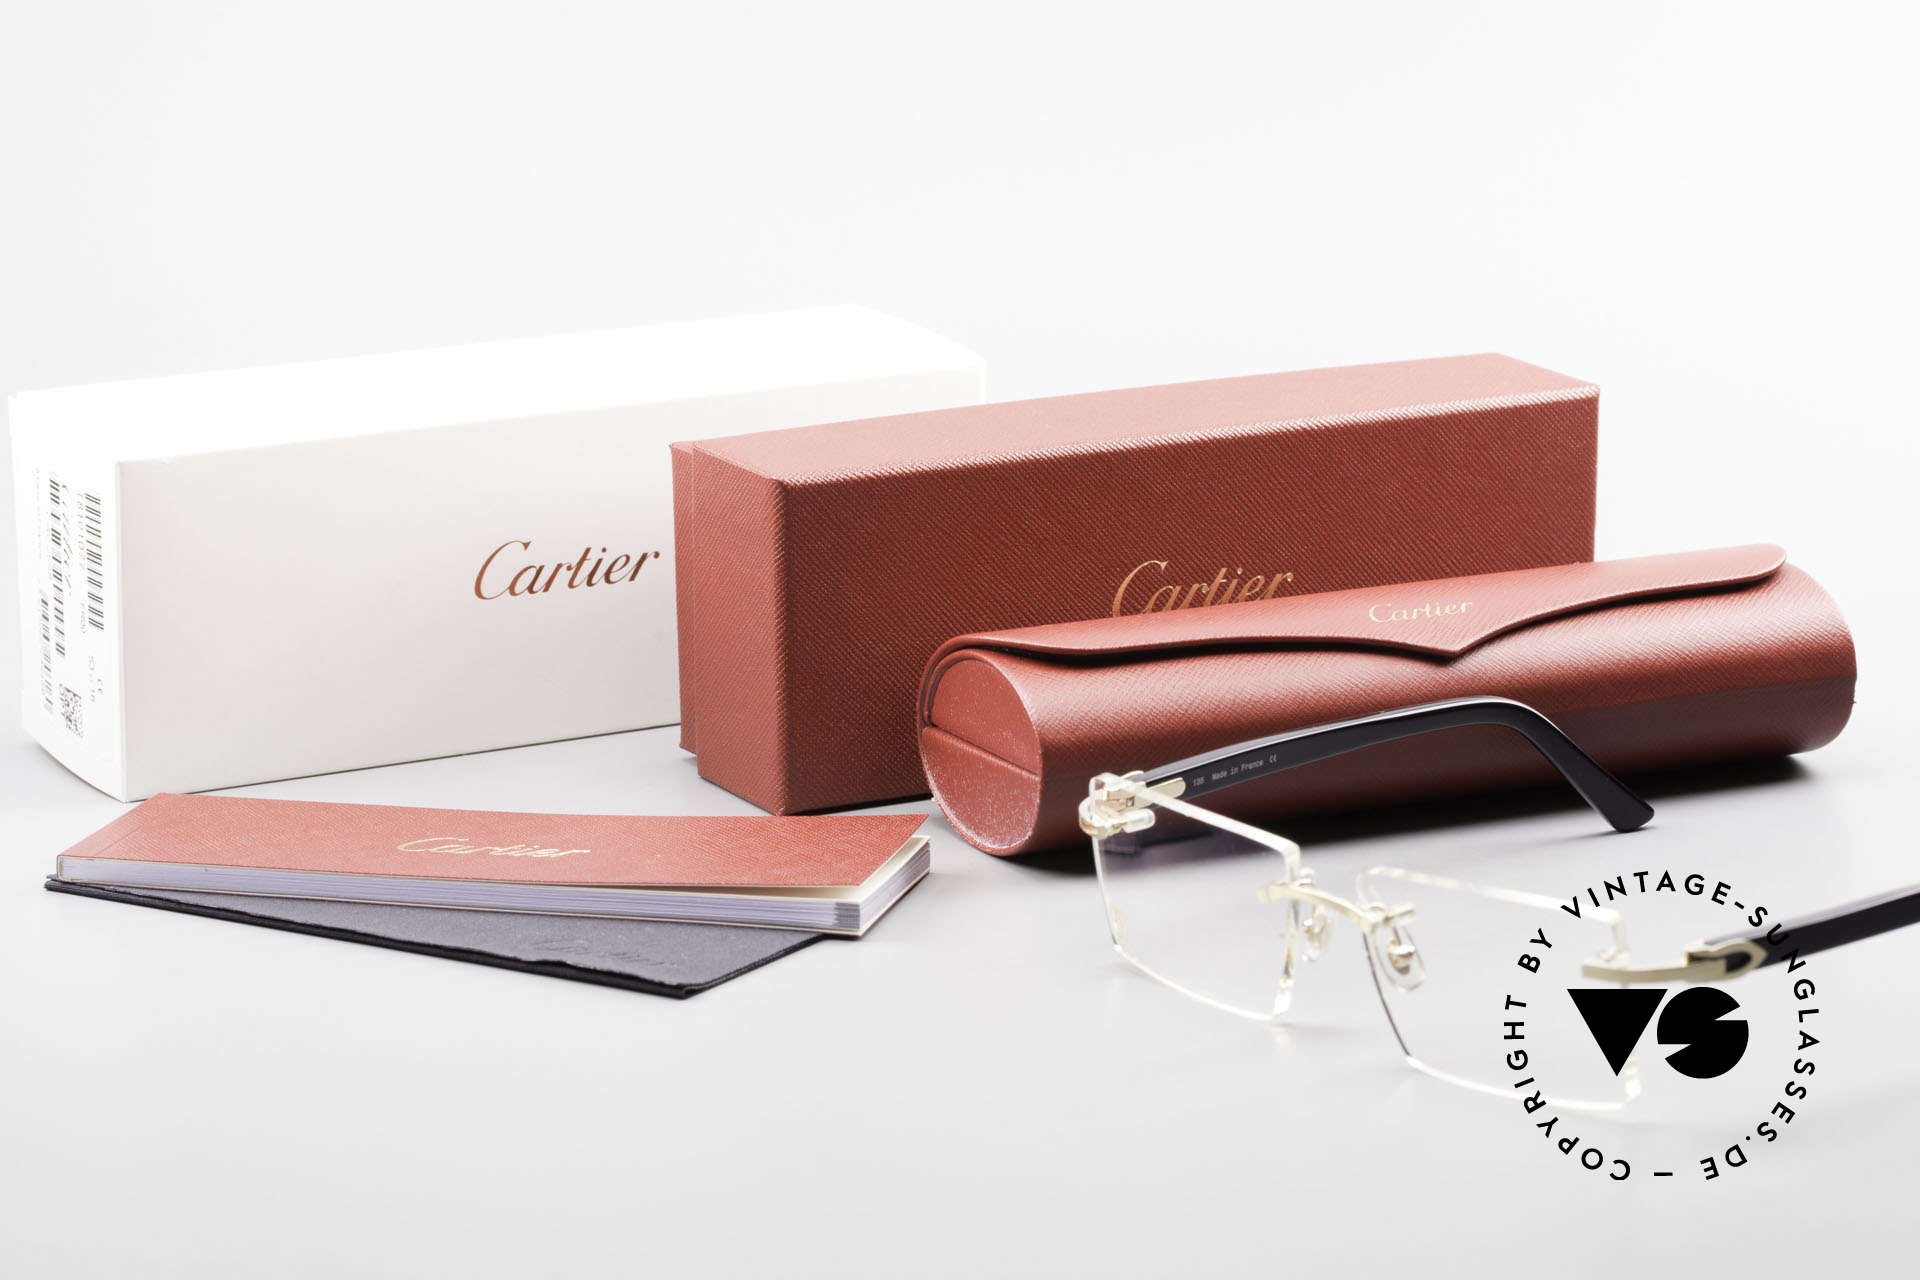 Cartier Canazei Rimless Luxury Frame Square, Size: medium, Made for Men and Women